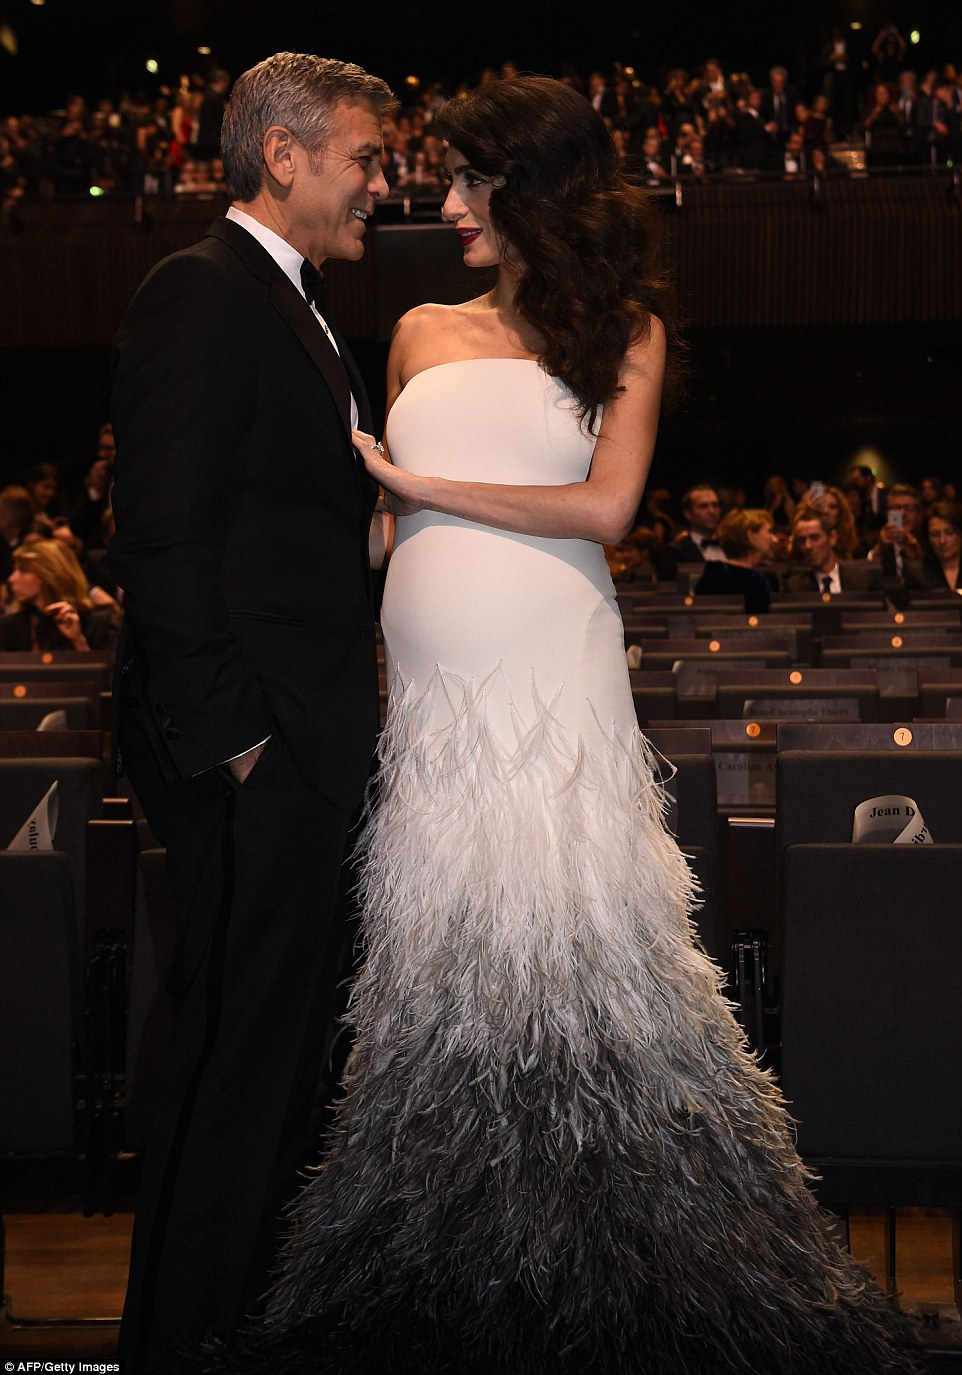 Pregnant Amal Clooney Shows Off Baby Bump in Fitted Gown